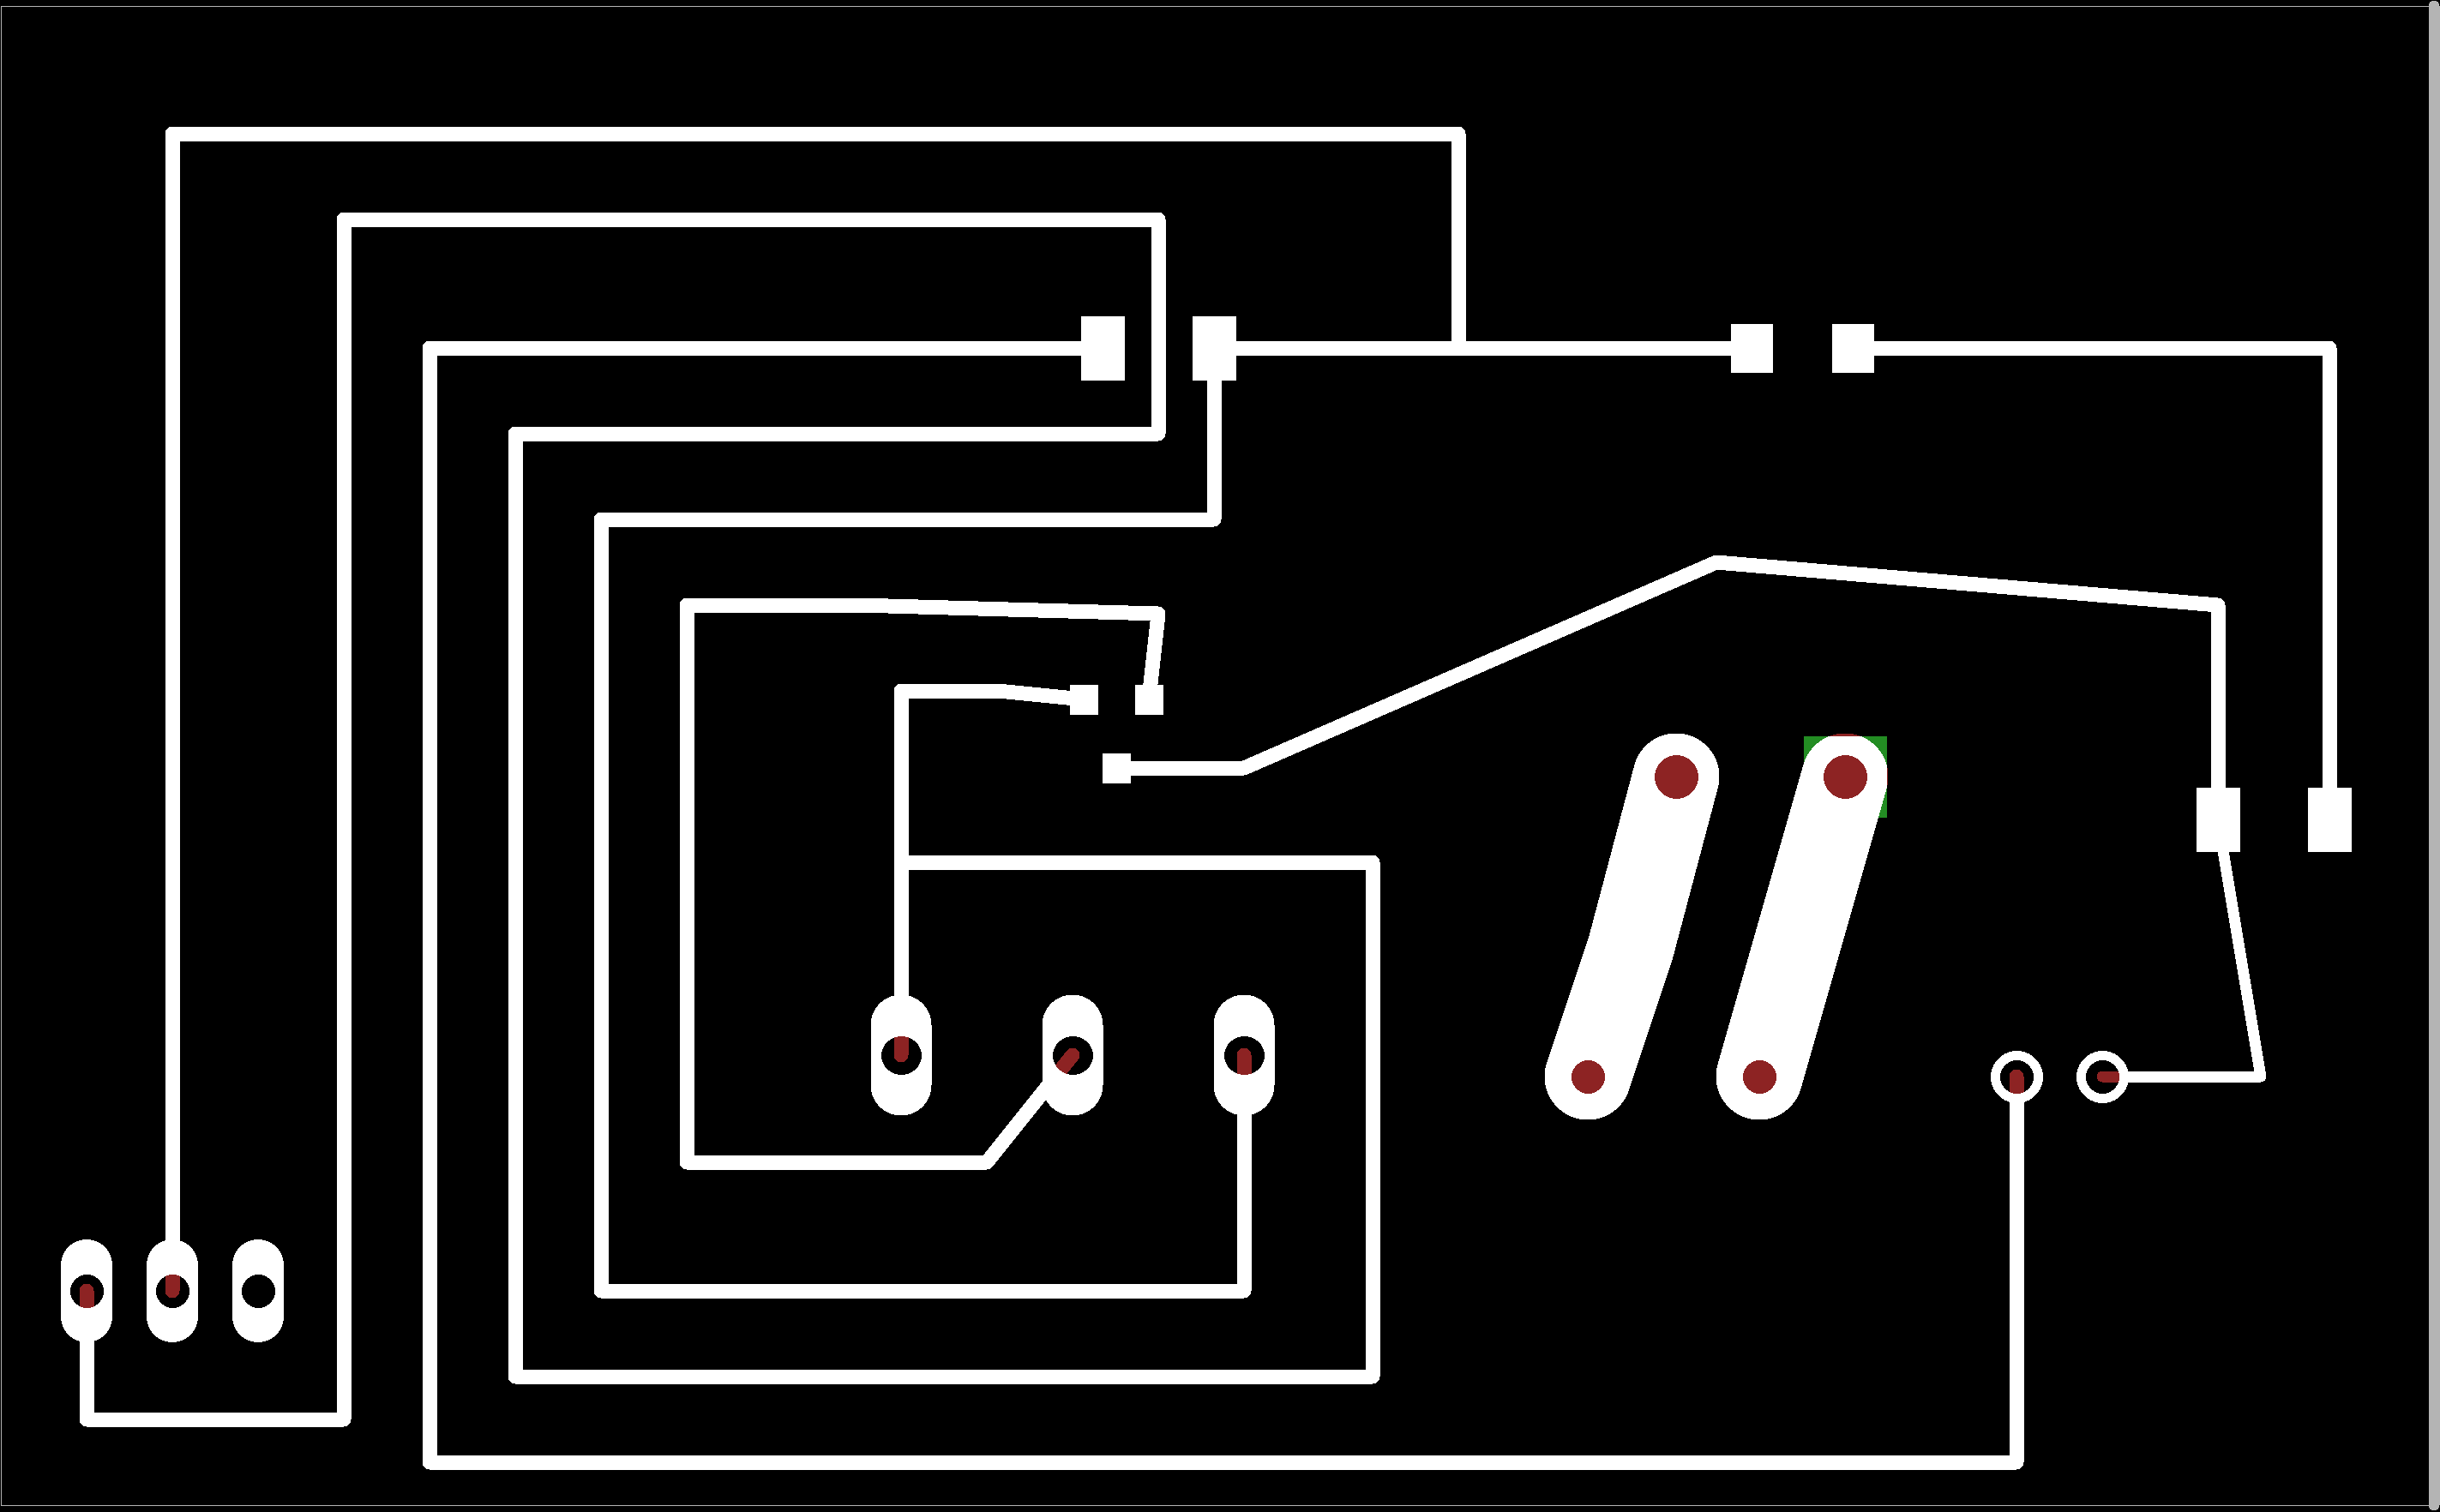 Final Project Week 19 Relay Board Schematic Traces Rough